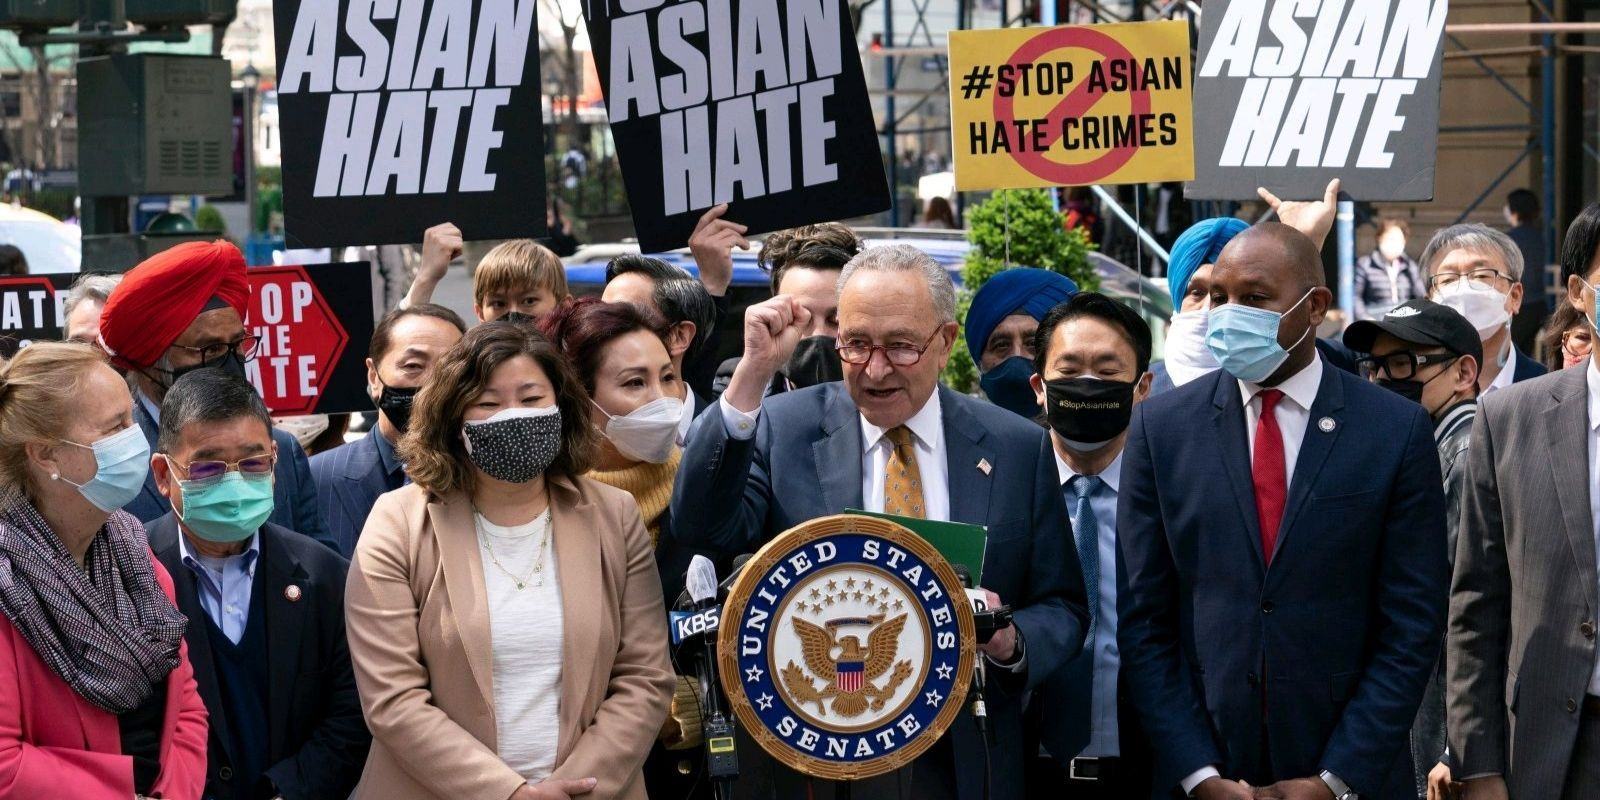 Senate passes bipartisan bill to combat anti-Asian hate crimes: 'Bigots, we're going after you'